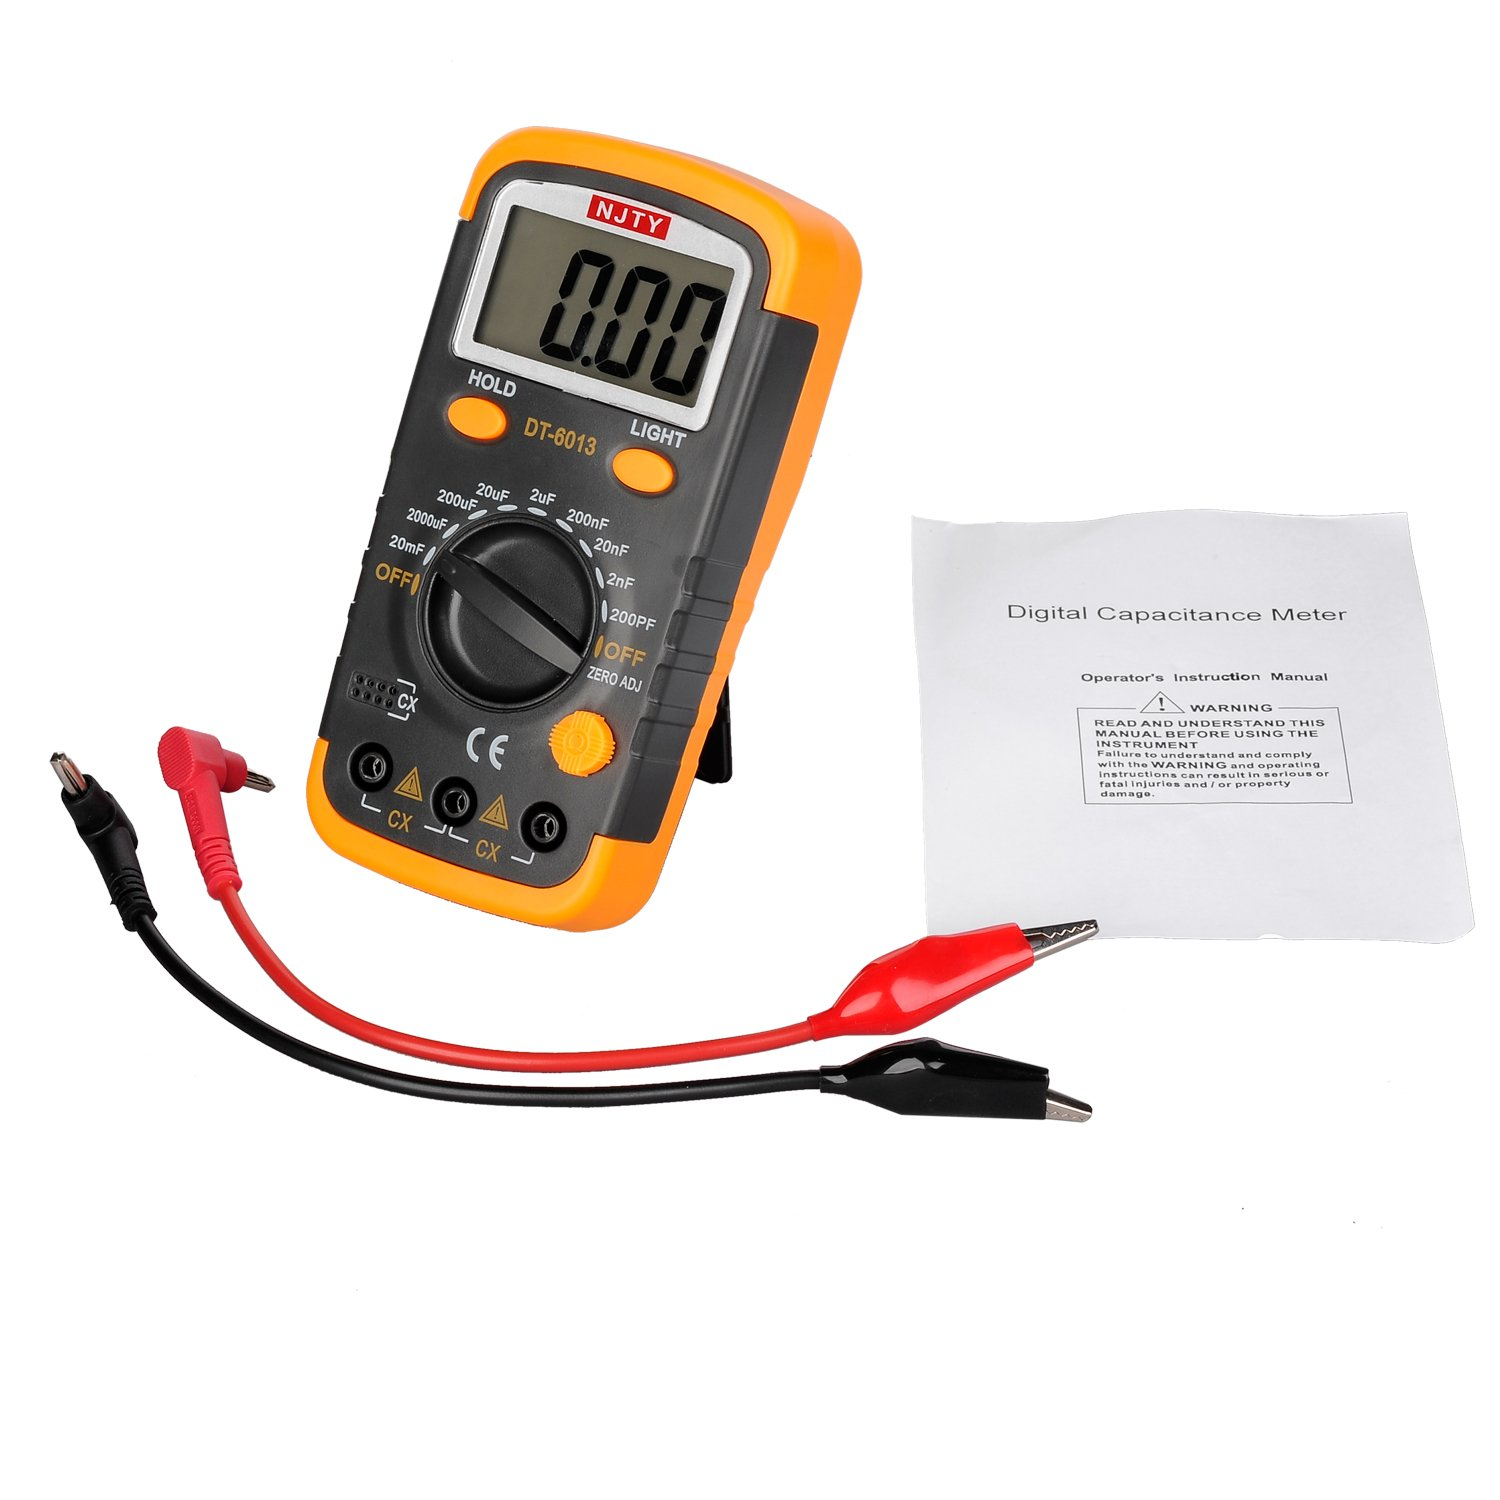 ELIKE DT6013 Capacitance Meter / Capacitor Tester 0.1pF to 20mF with Data Hold and Back Light Function/English Manual by ELIKE (Image #5)